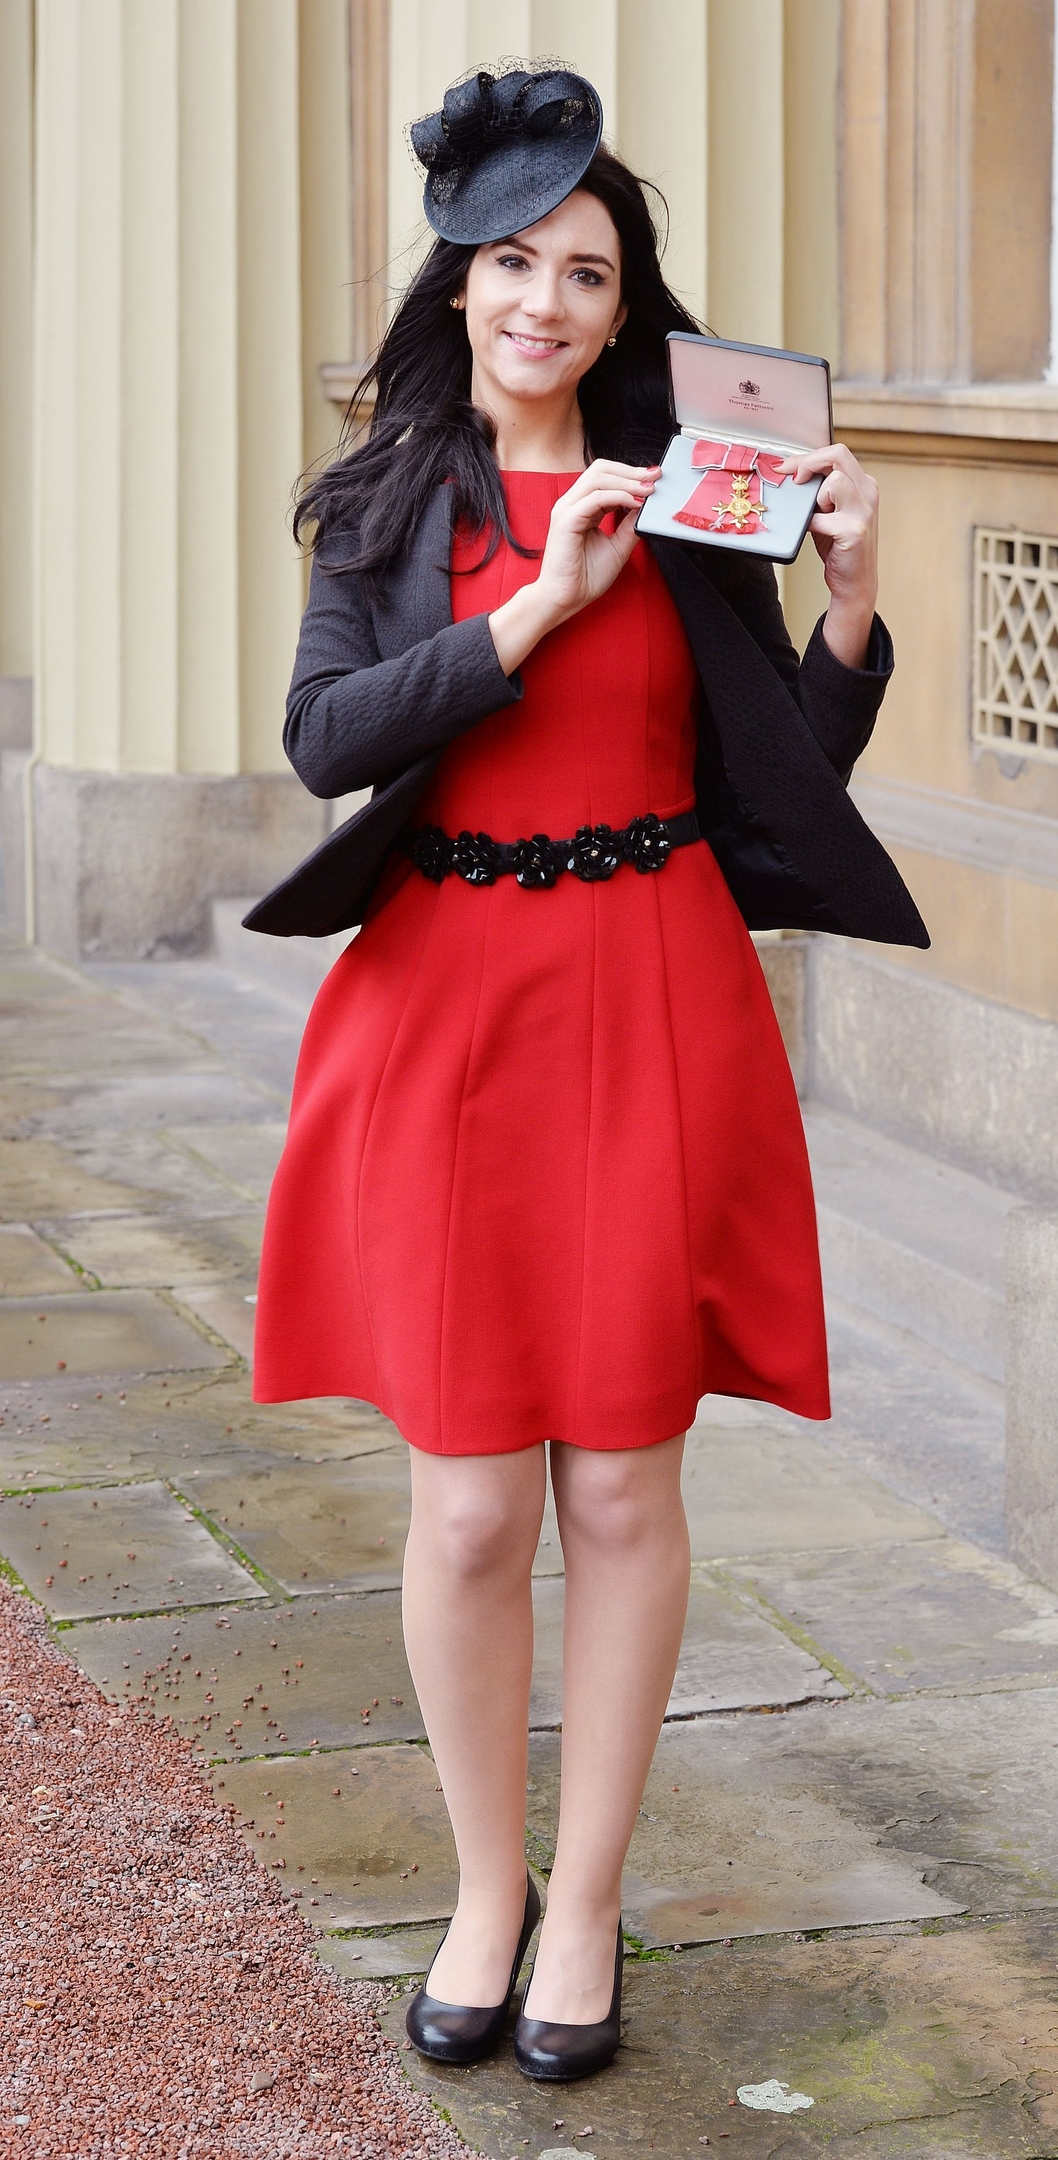 Claire Foges with her Officer of the Order of the British Empire (OBE) medal which was presented by the Prince of Wales at the Investiture ceremony in Buckingham Palace, London.